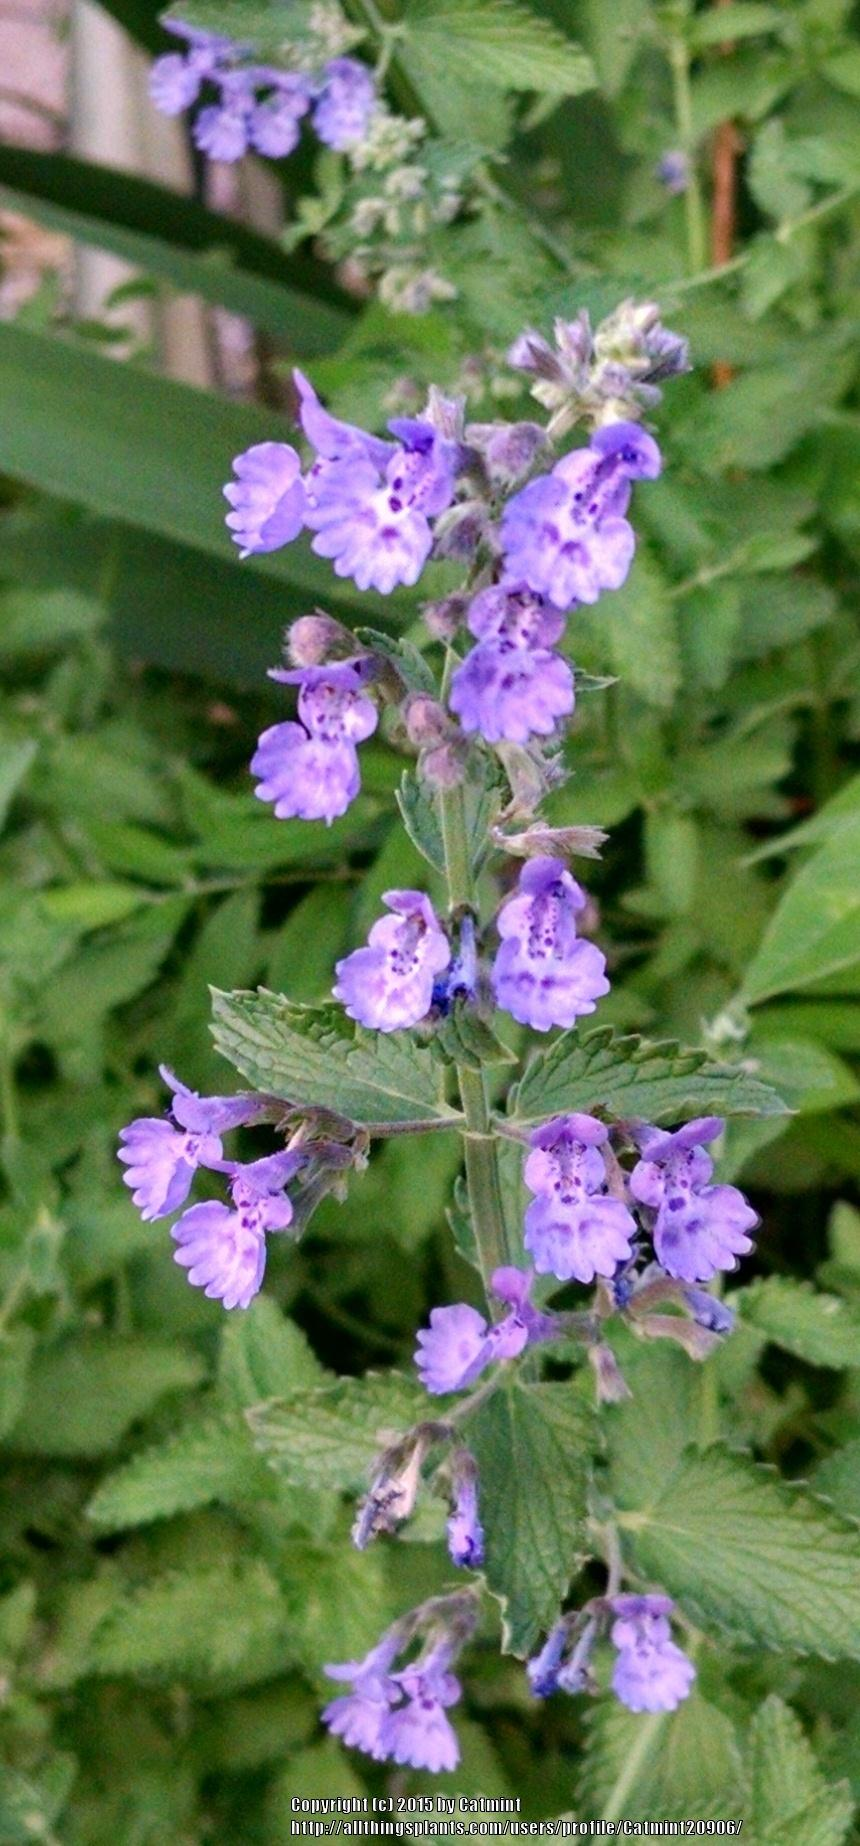 Photo of Catmint (Nepeta x faassenii 'Walker's Low') uploaded by Catmint20906